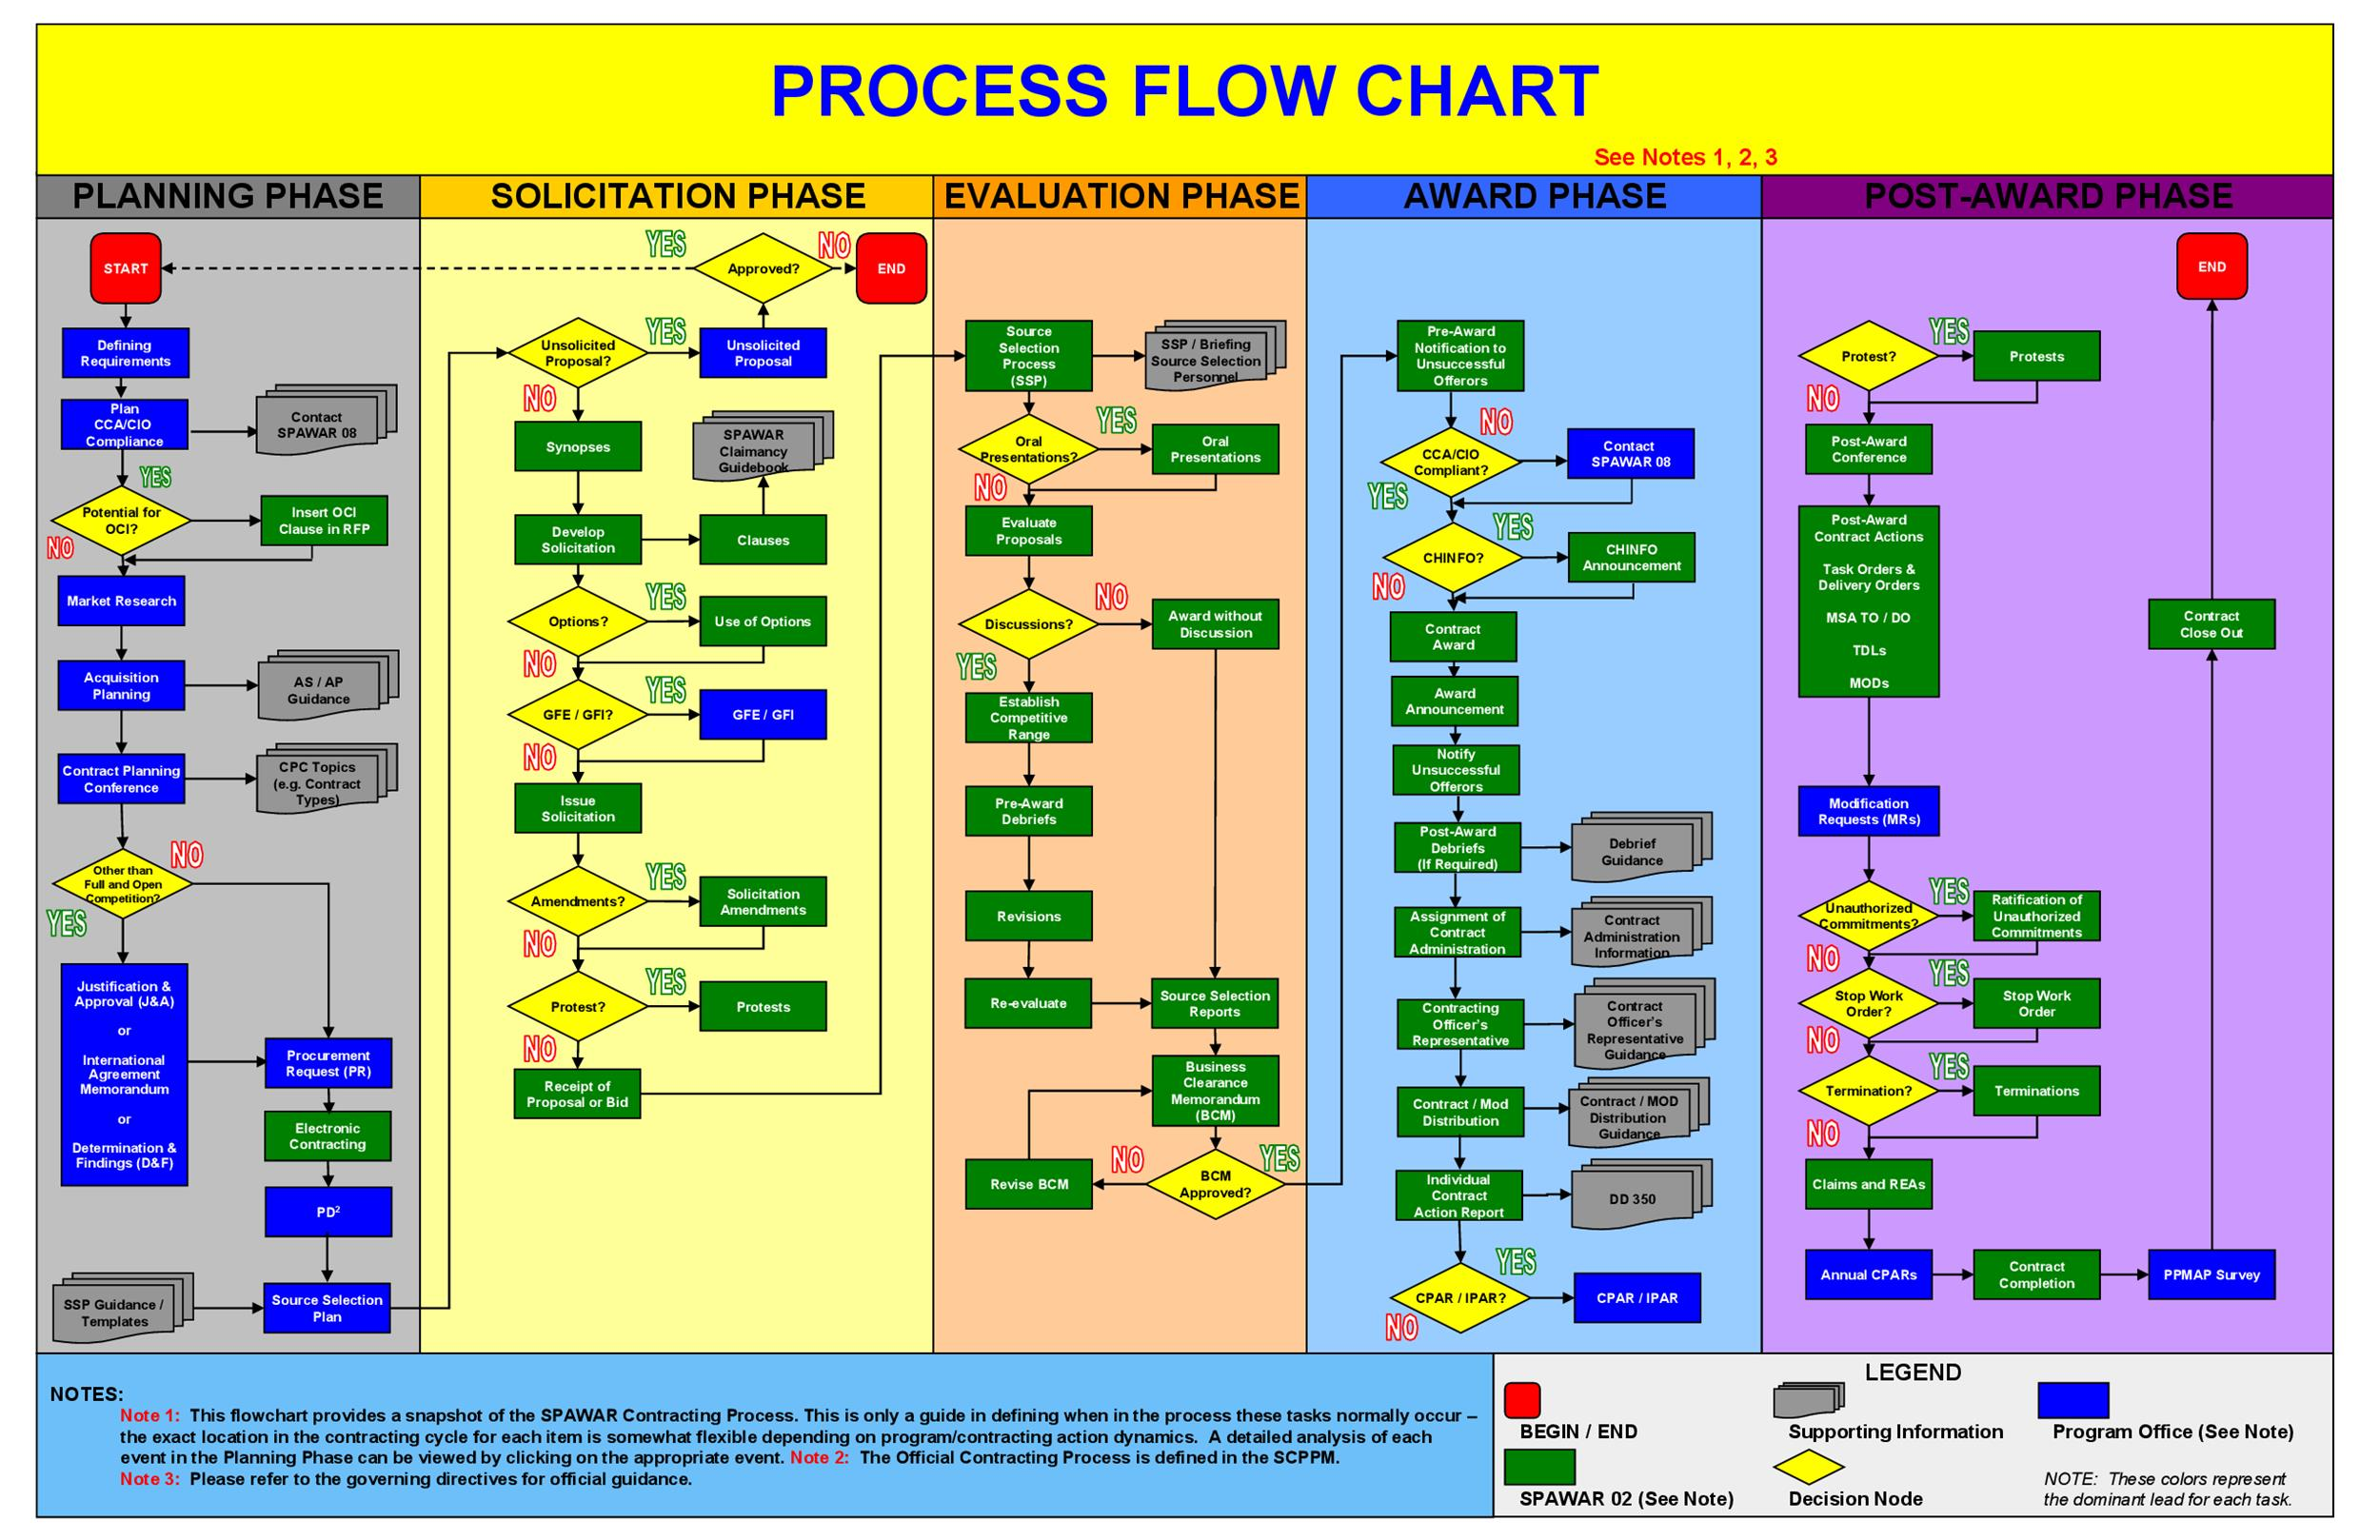 40 fantastic flow chart templates [word, excel, power point]free flow chart template 06